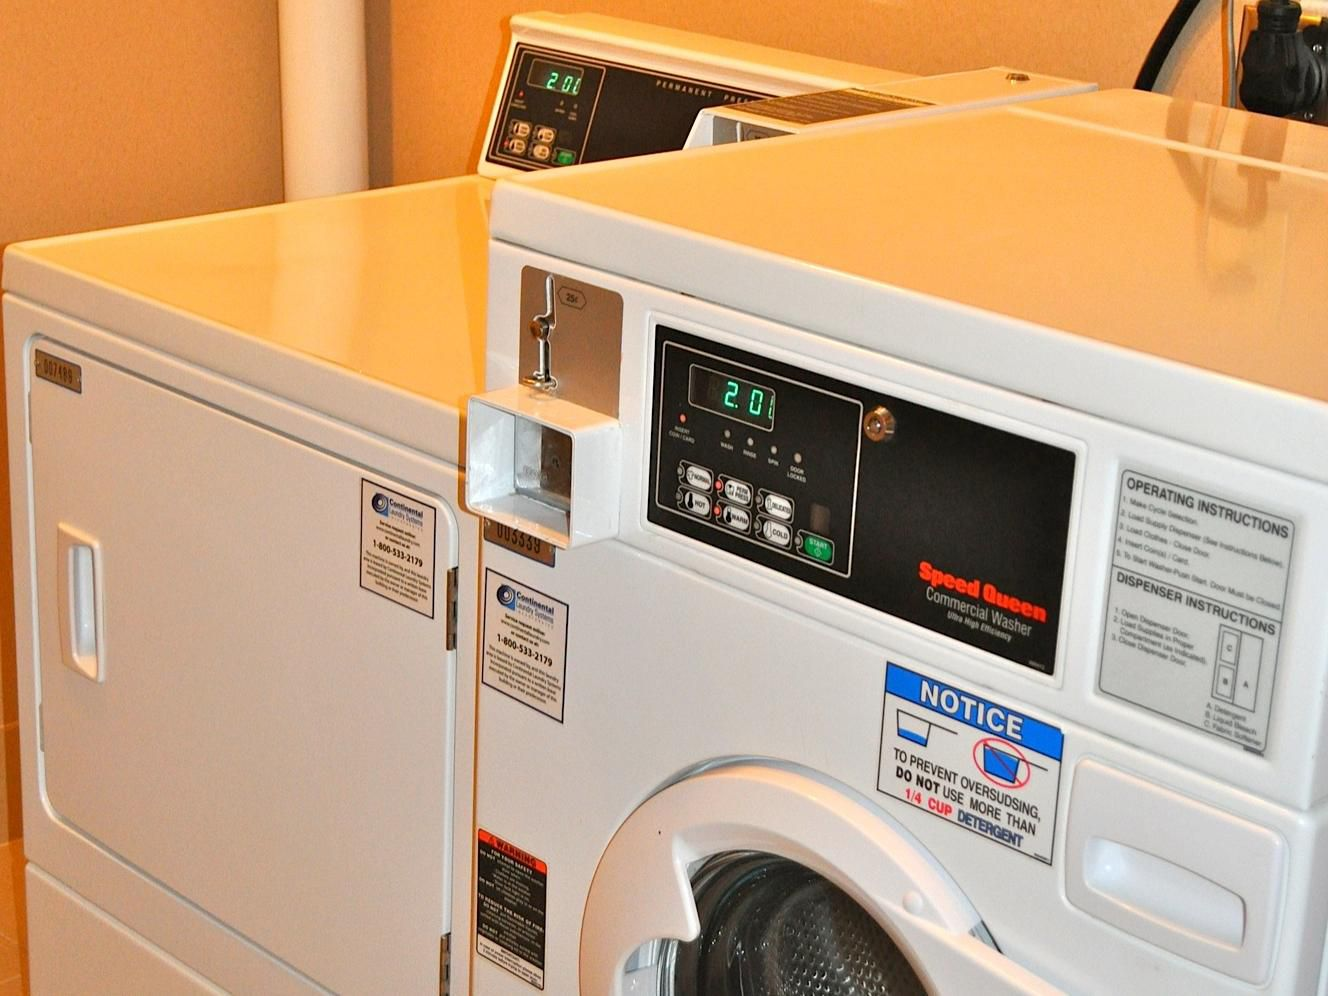 Holiday Inn Express Waterfront Mall Laundry Facility